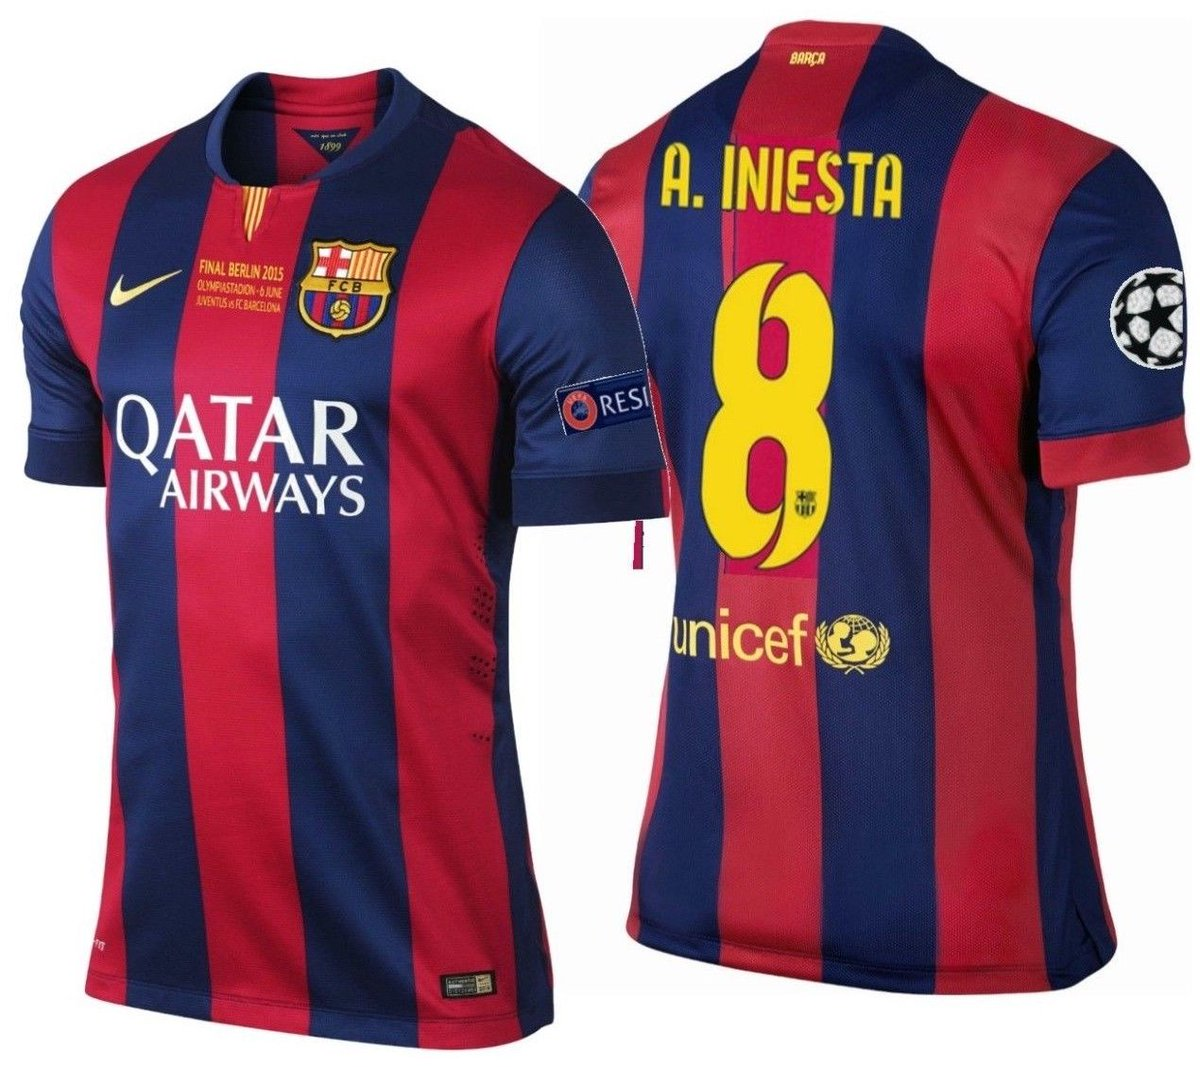 02daaae79e3 ...   barcelona products nike-andres-iniesta-fc-barcelona-uefa-champions-league-final-berlin-2015- authentic-match-jersey …pic.twitter.com NA1Zz8CRPg